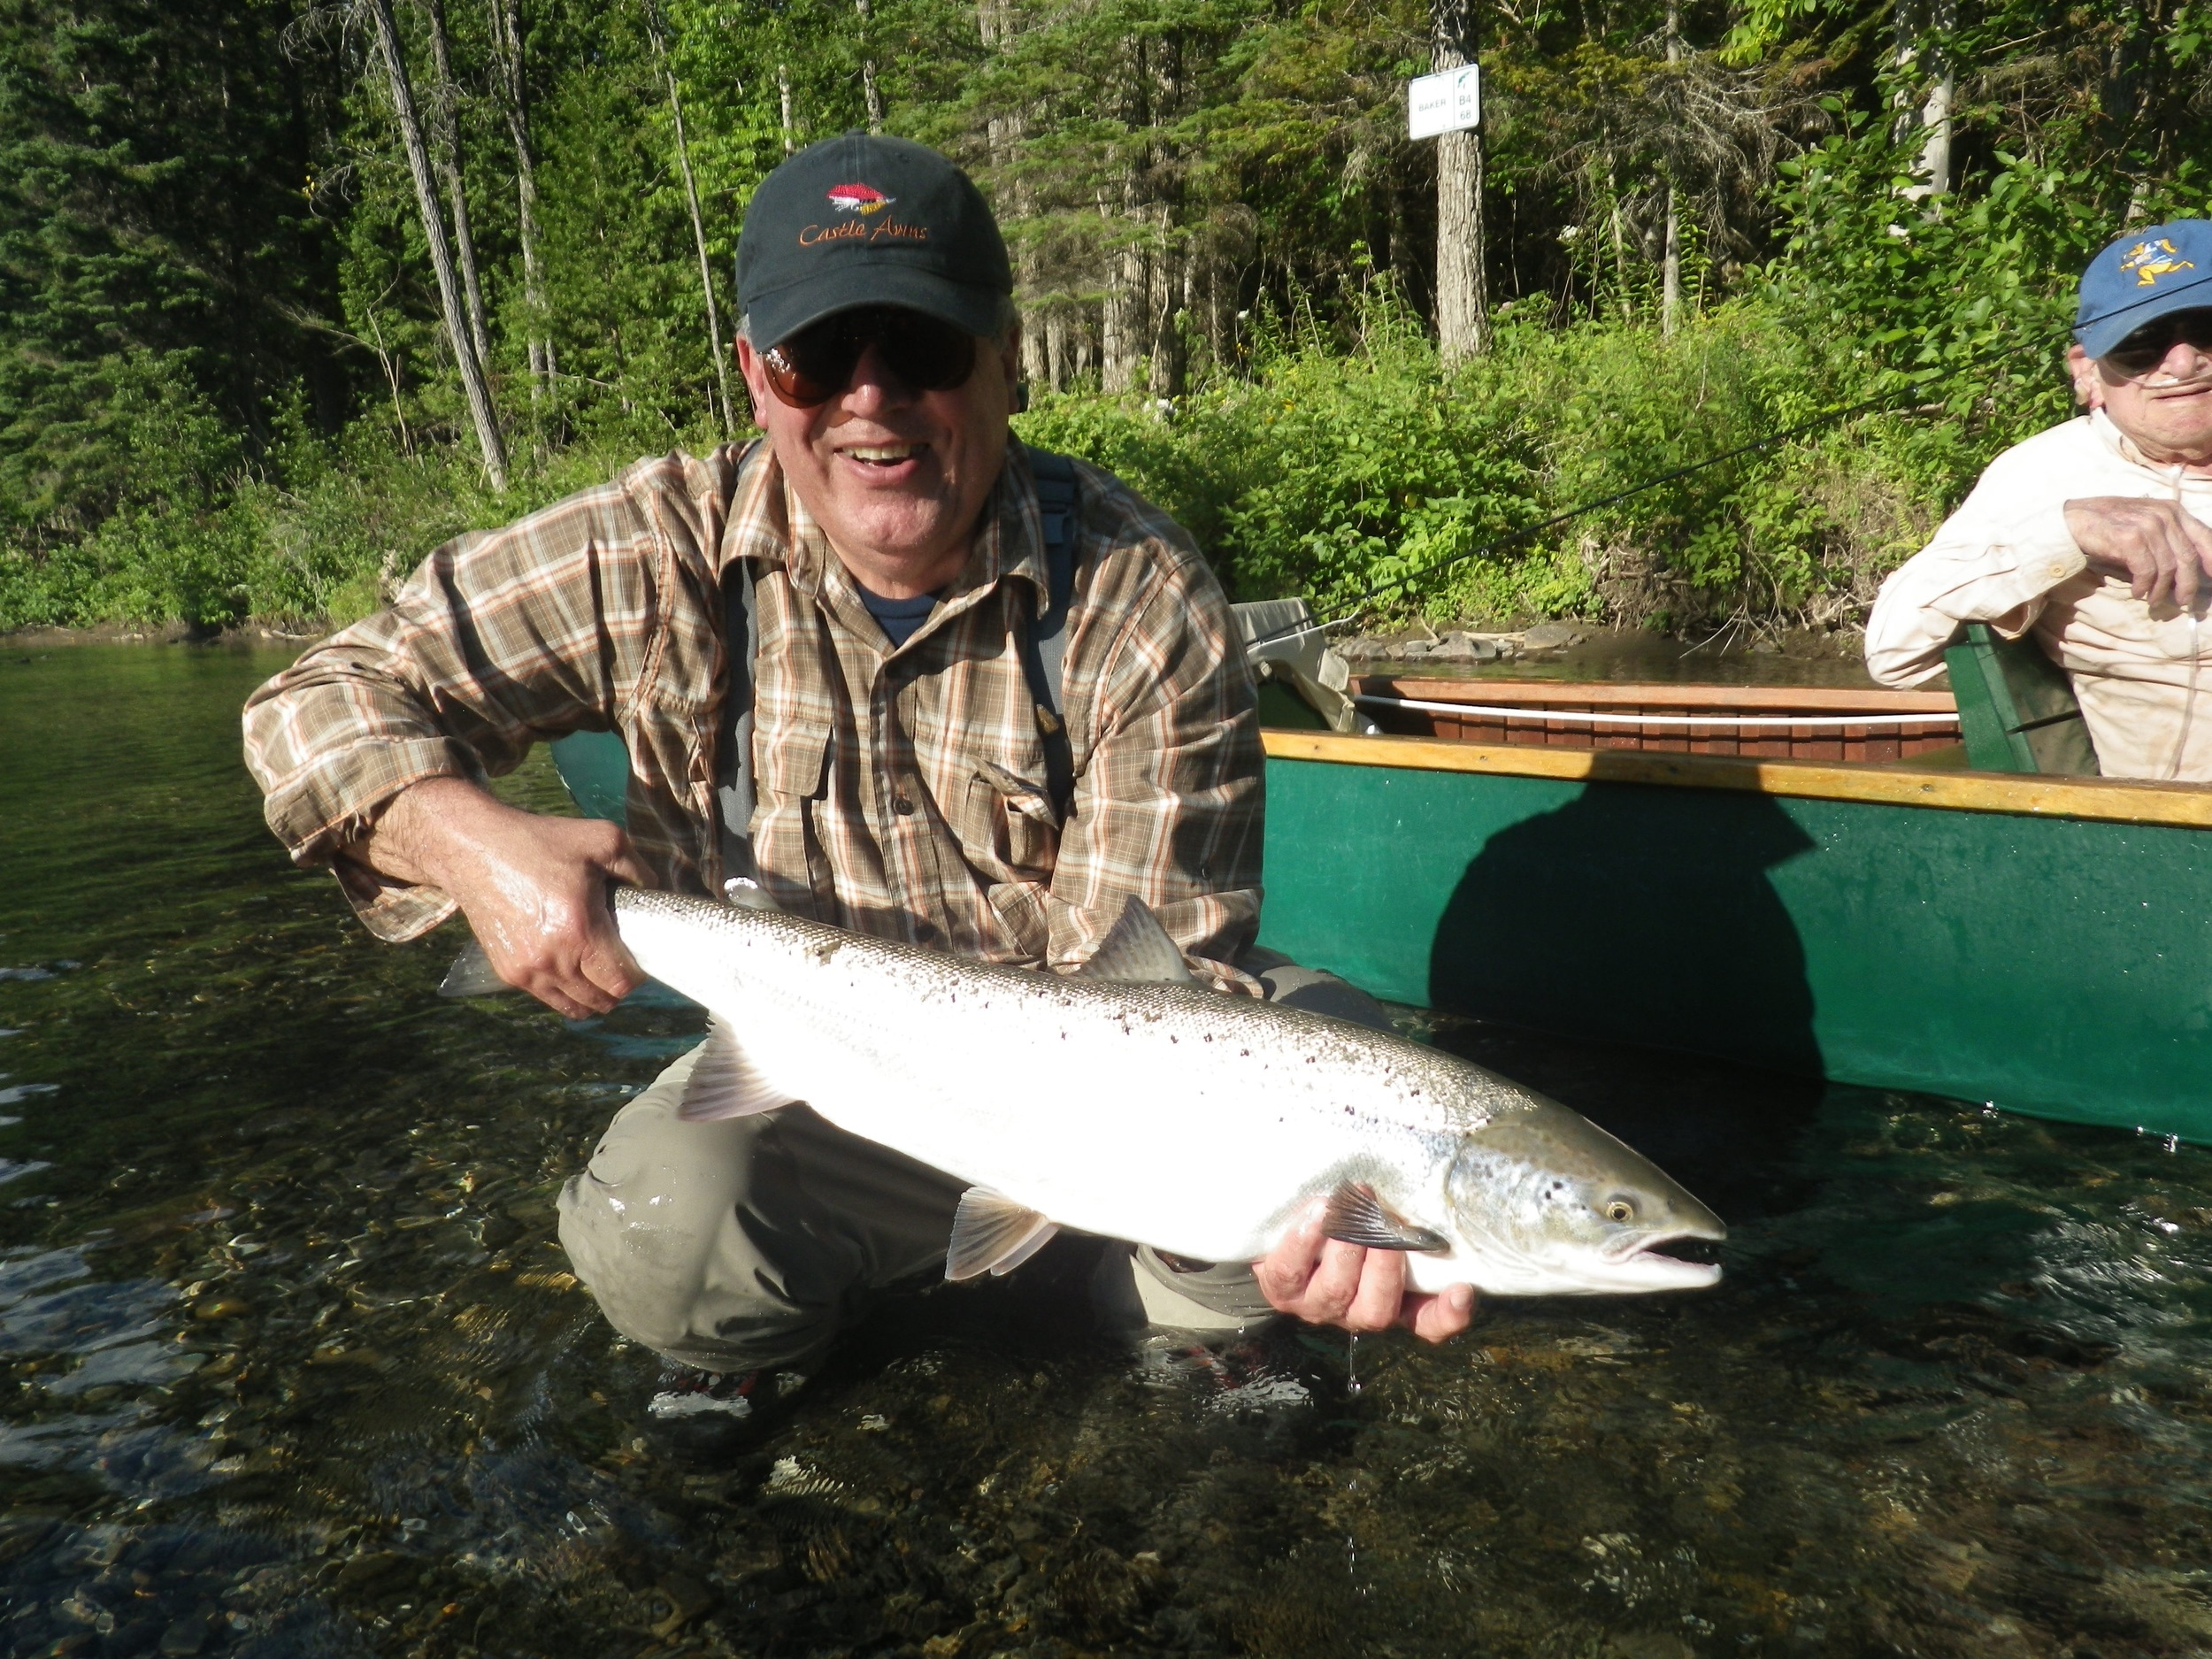 Camp Bonaventure regular David Castleman with a nice Bonaventure salmon, Congratulations David!